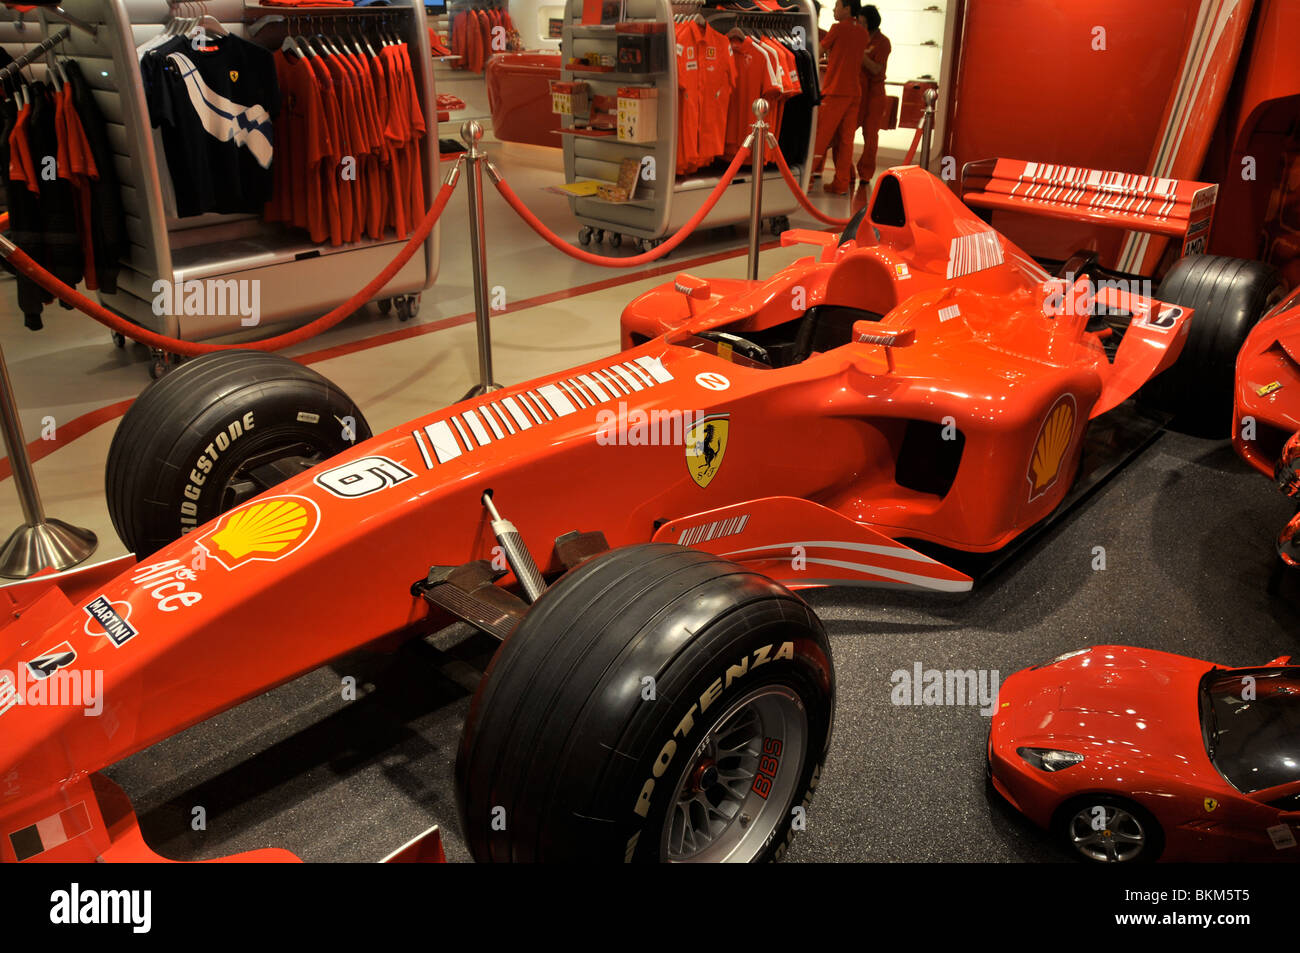 ferrari f1 car in store of wynn hotel casino macau china stock photo 29332469 alamy. Black Bedroom Furniture Sets. Home Design Ideas